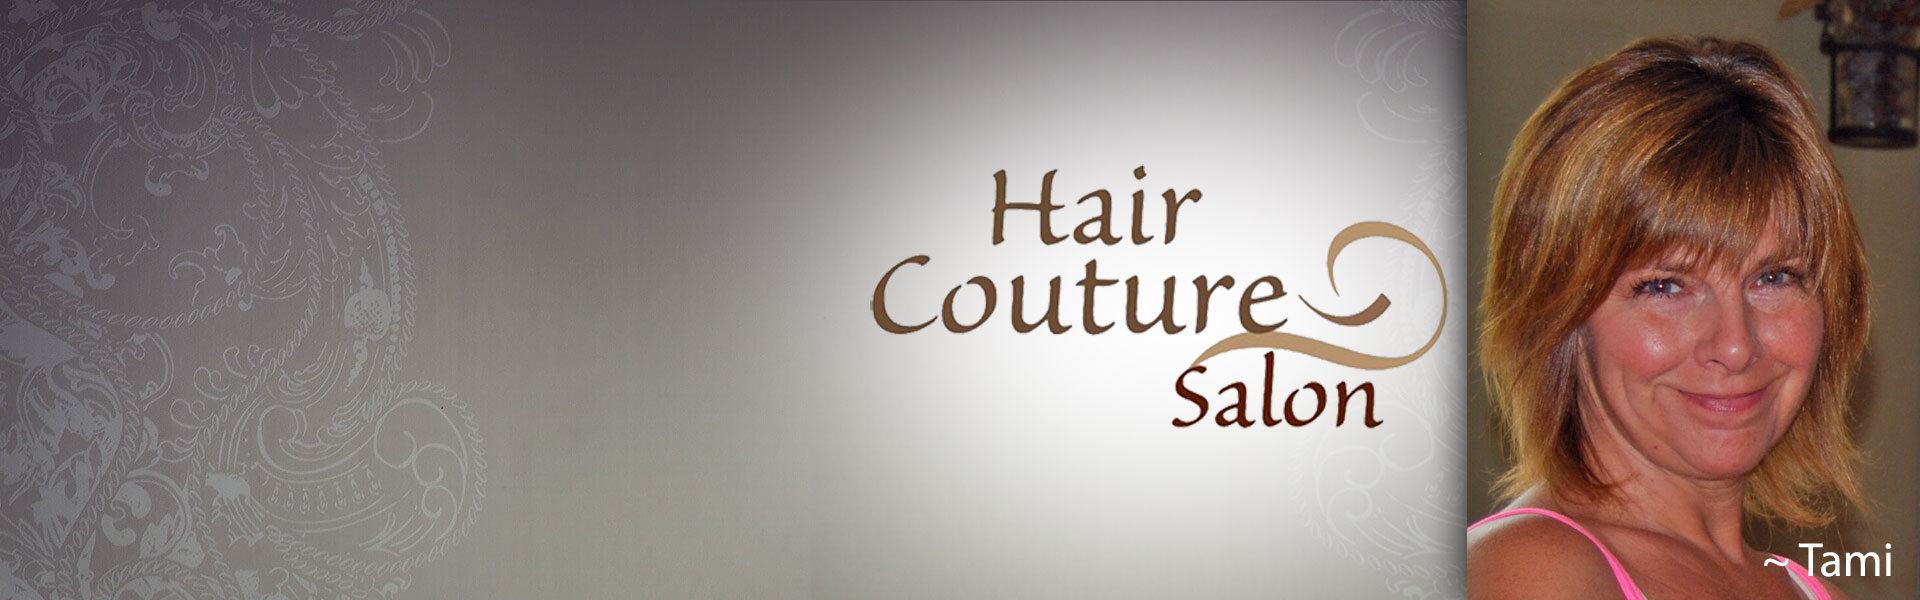 Hair Couture Salon, Ridgefield CT